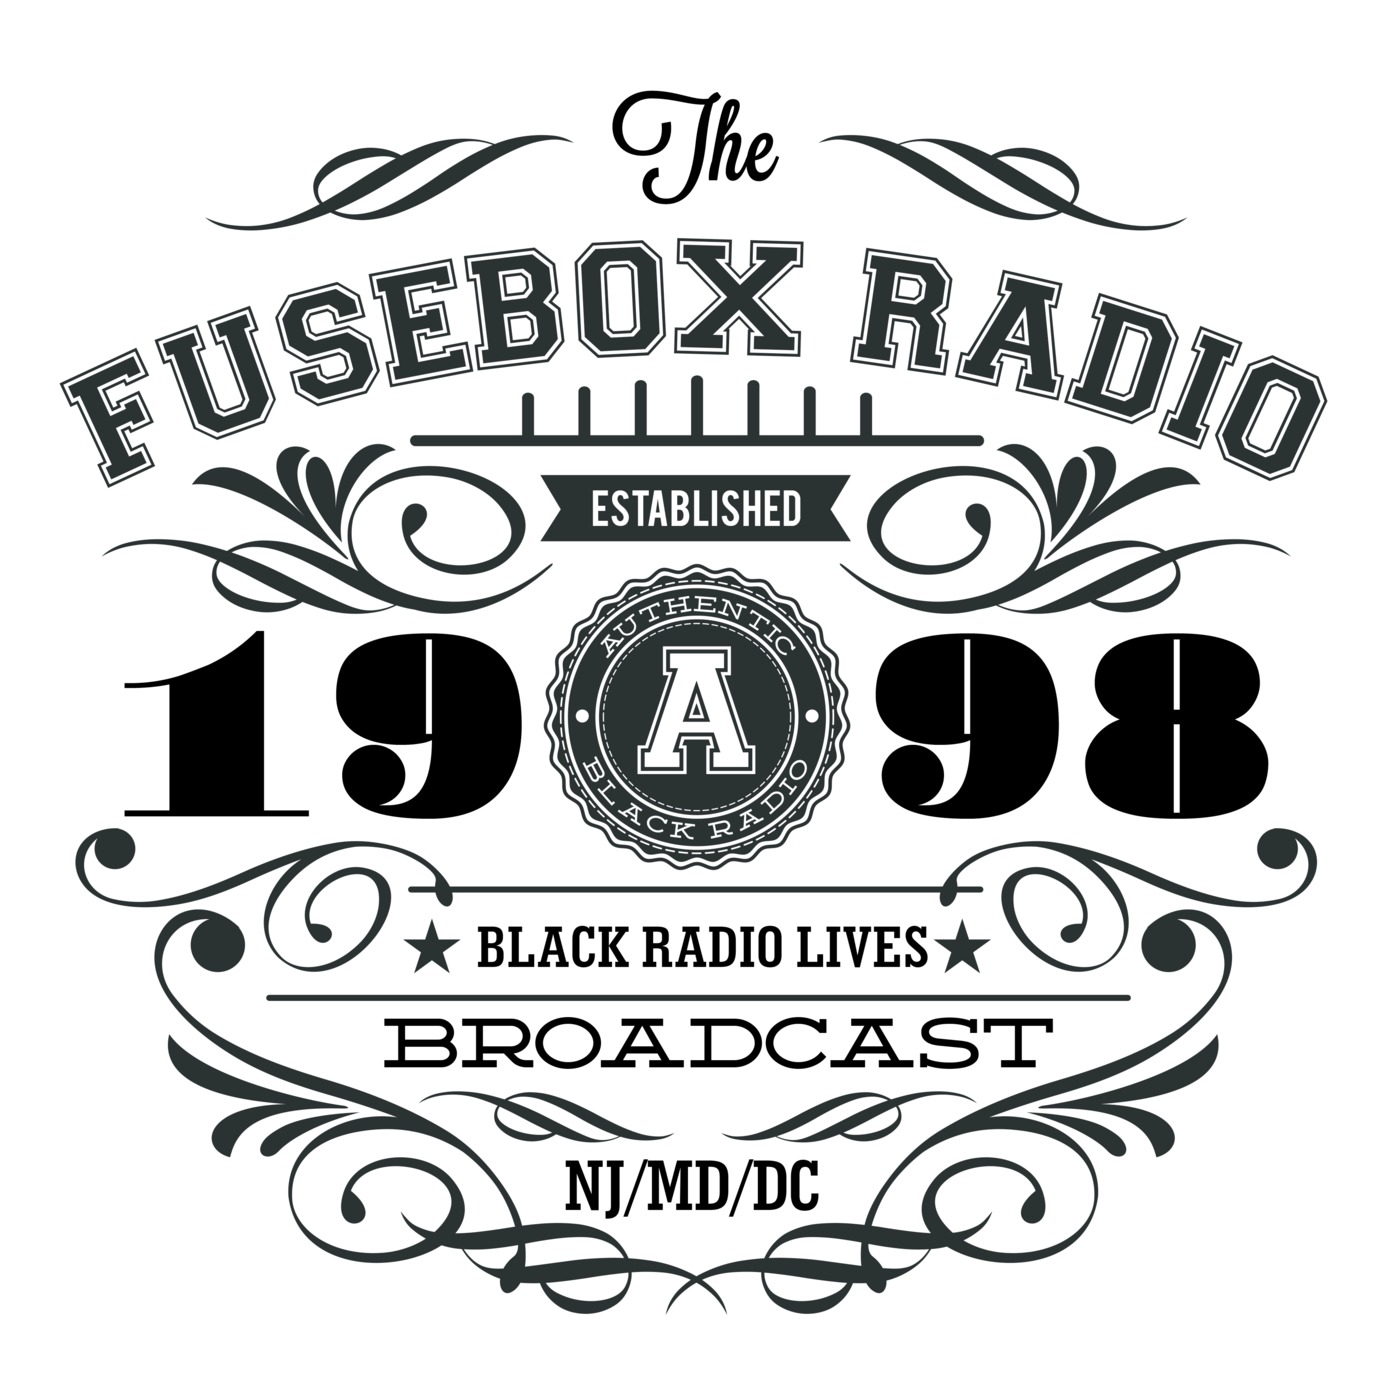 hight resolution of here s a brand new hip hop soul mixtape as a part of a fusebox radio broadcast mini podcast episode for folks to check out this july 4th independence day